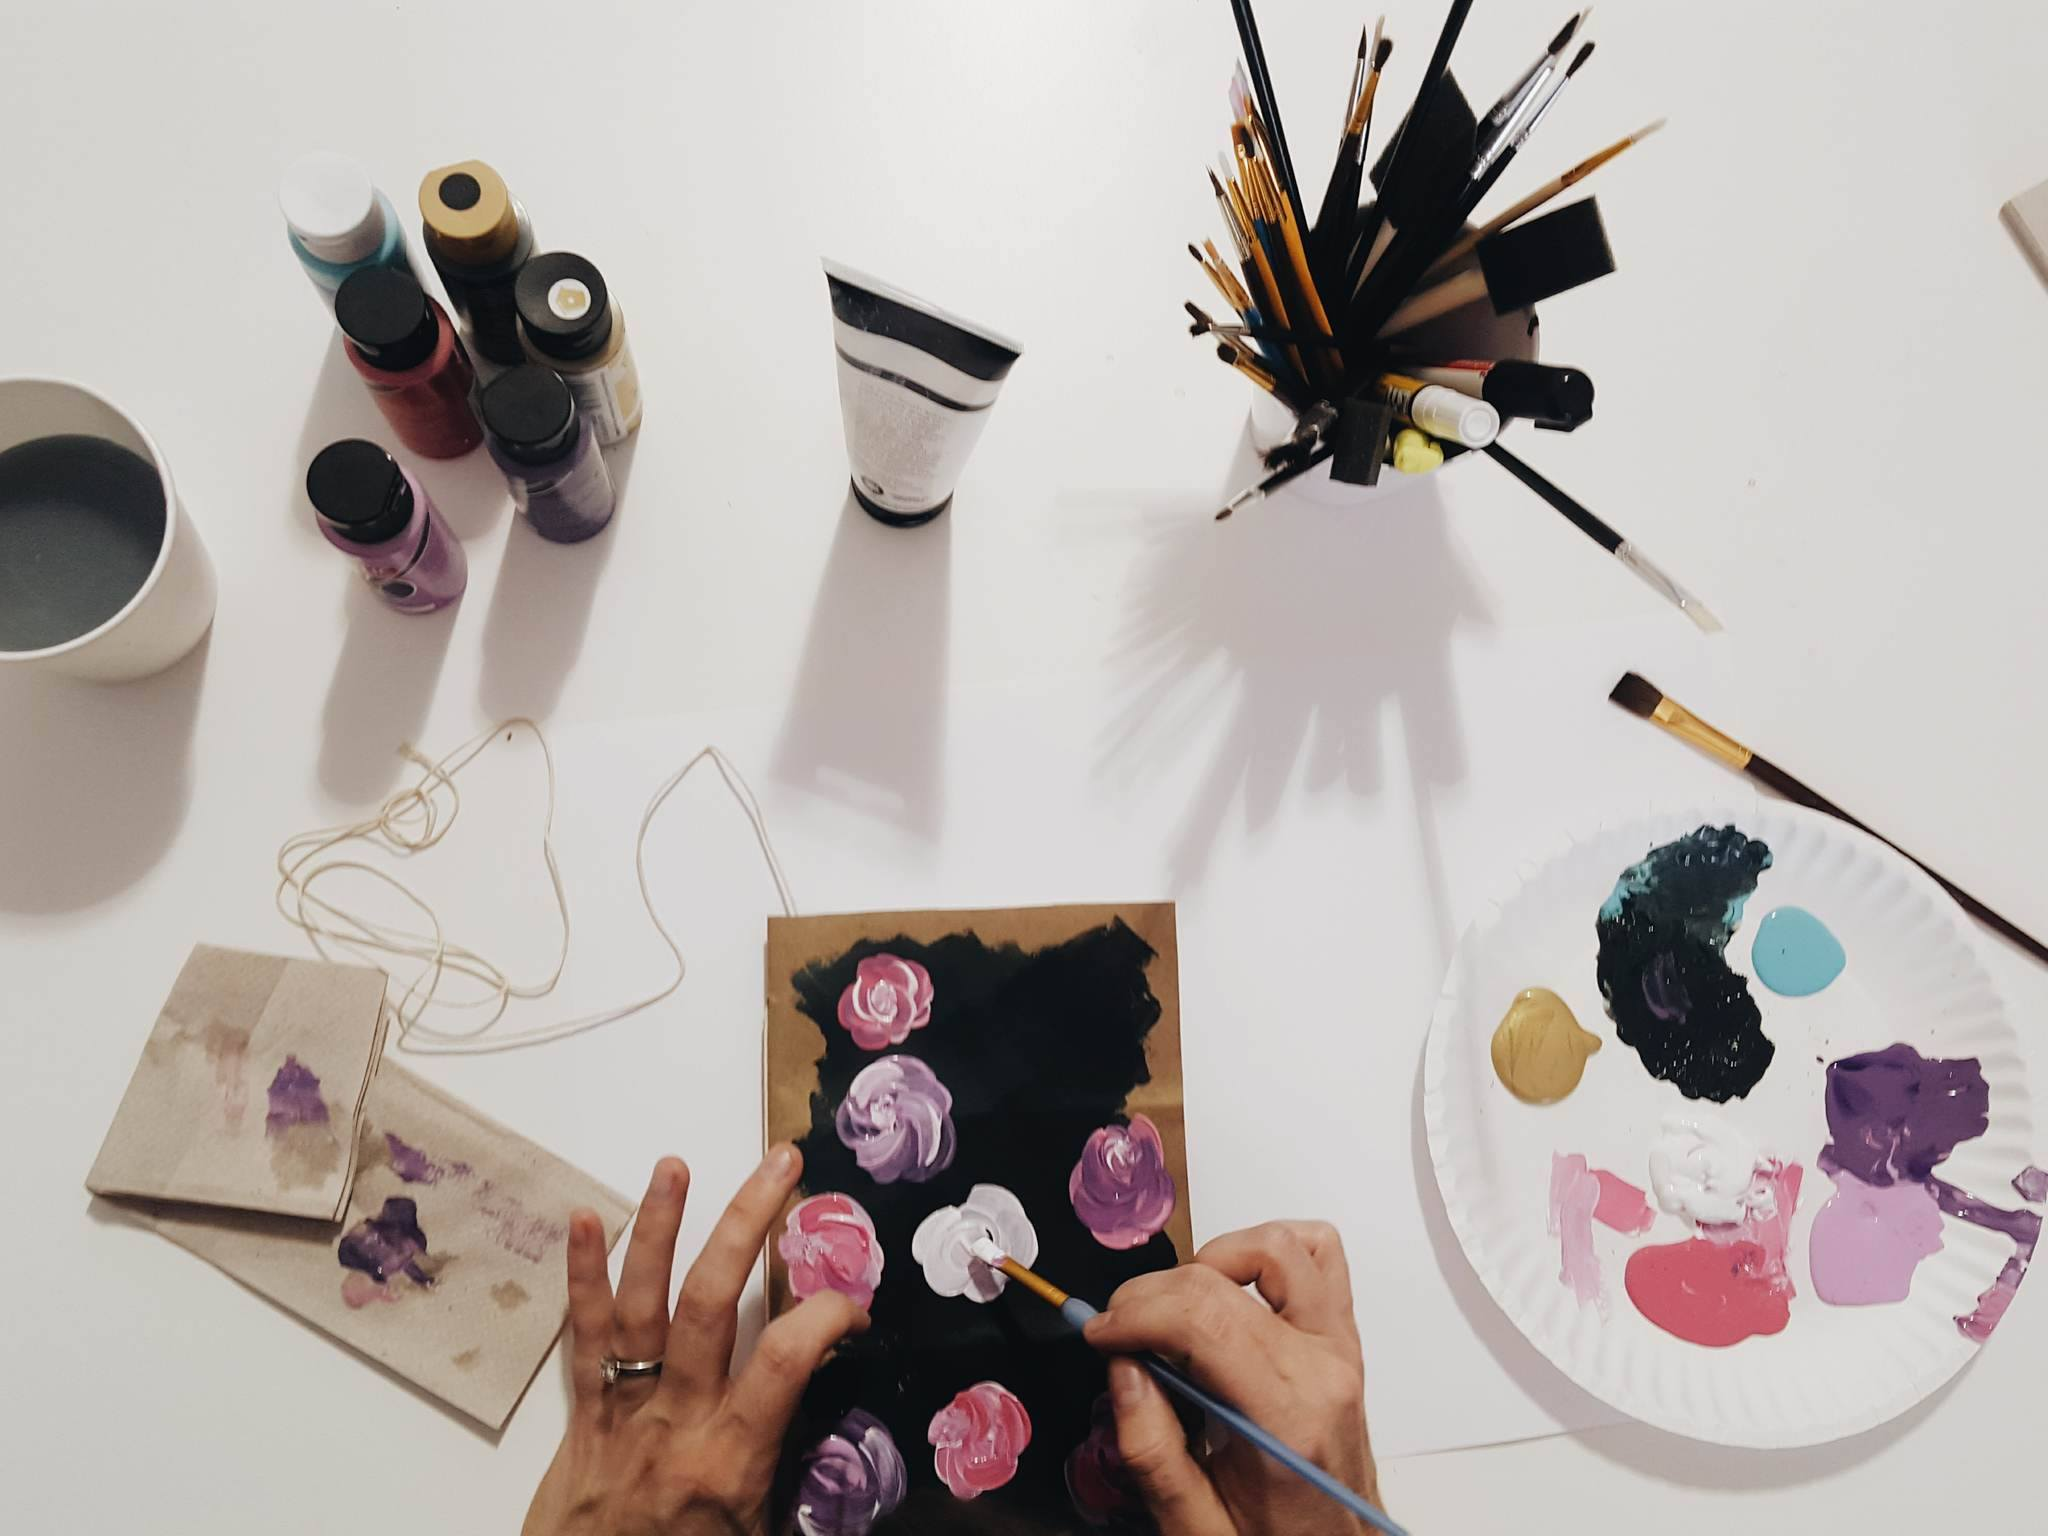 Customize your cover with a painted design of your choosing. Don't be afraid to get messy or have imperfections, the   made-by-hand-ness,  makes your journal so special.